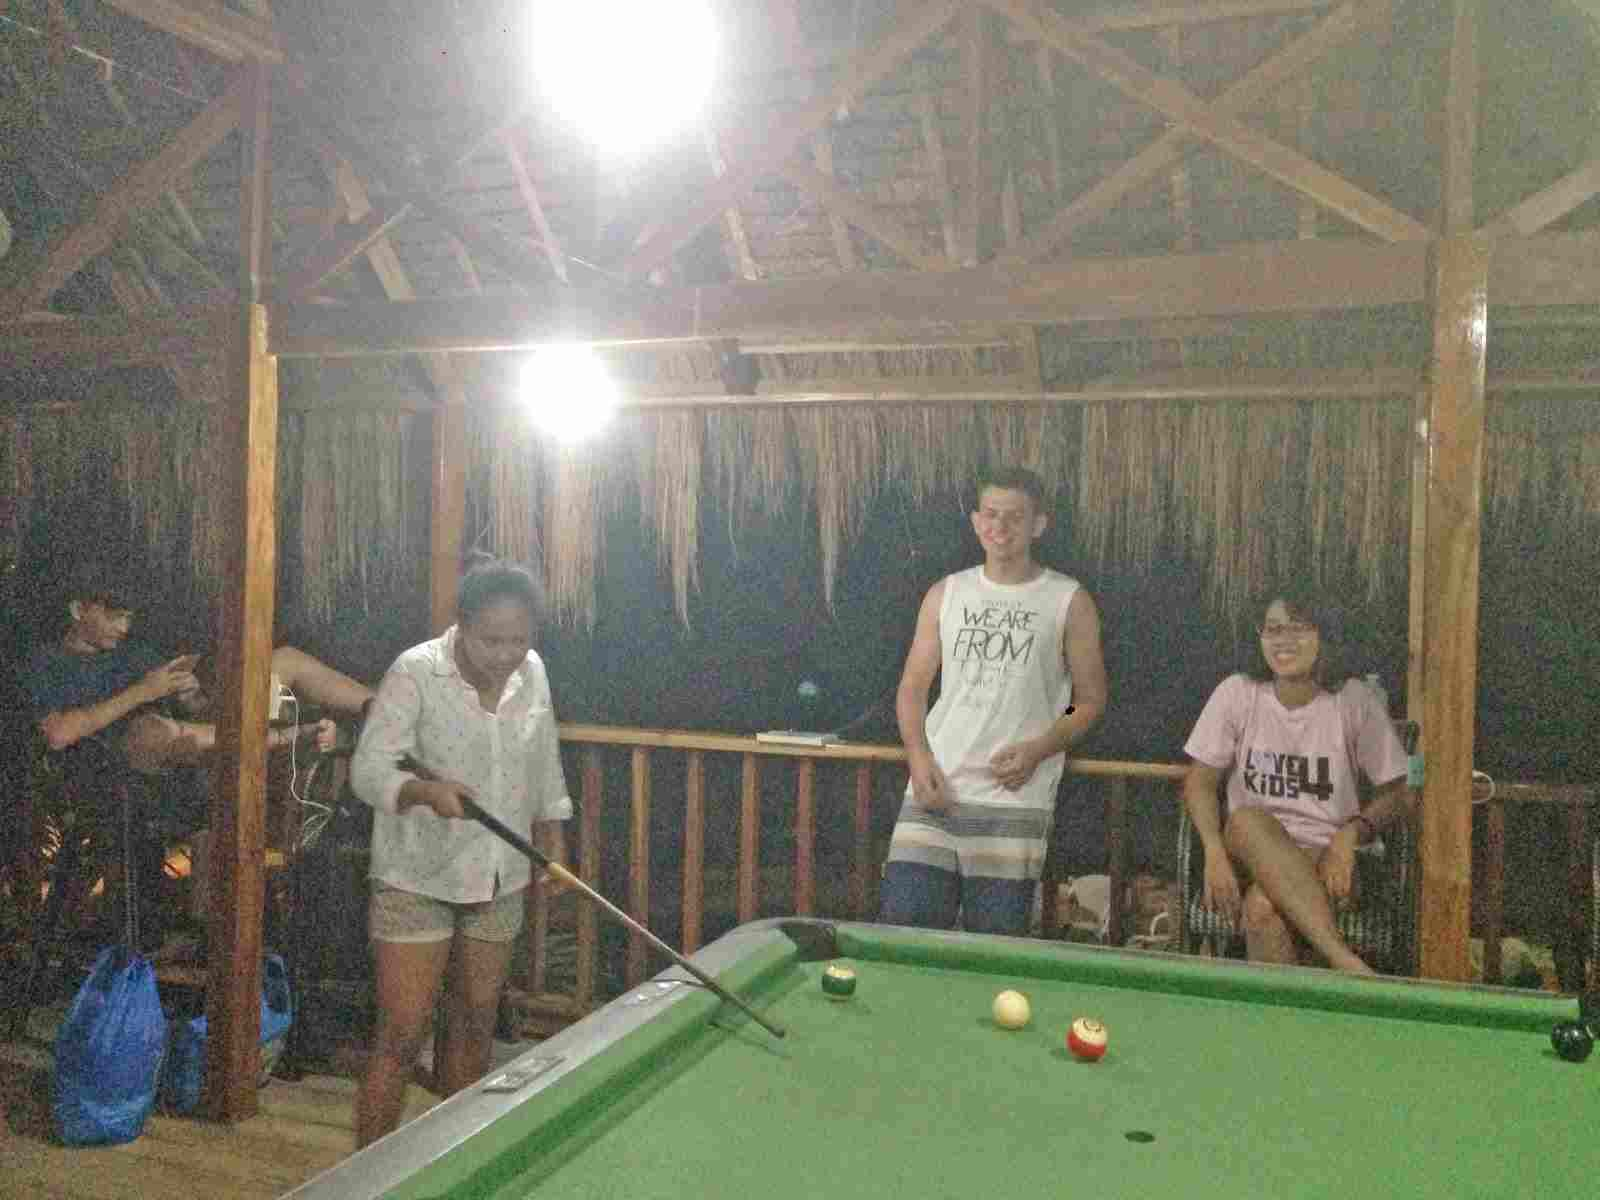 budget cheap resort in panglao white island bohol philippines in 2018, best travel summer vacation tour, panglao chocolate hills resort billiard area, picture taking while playing billiard